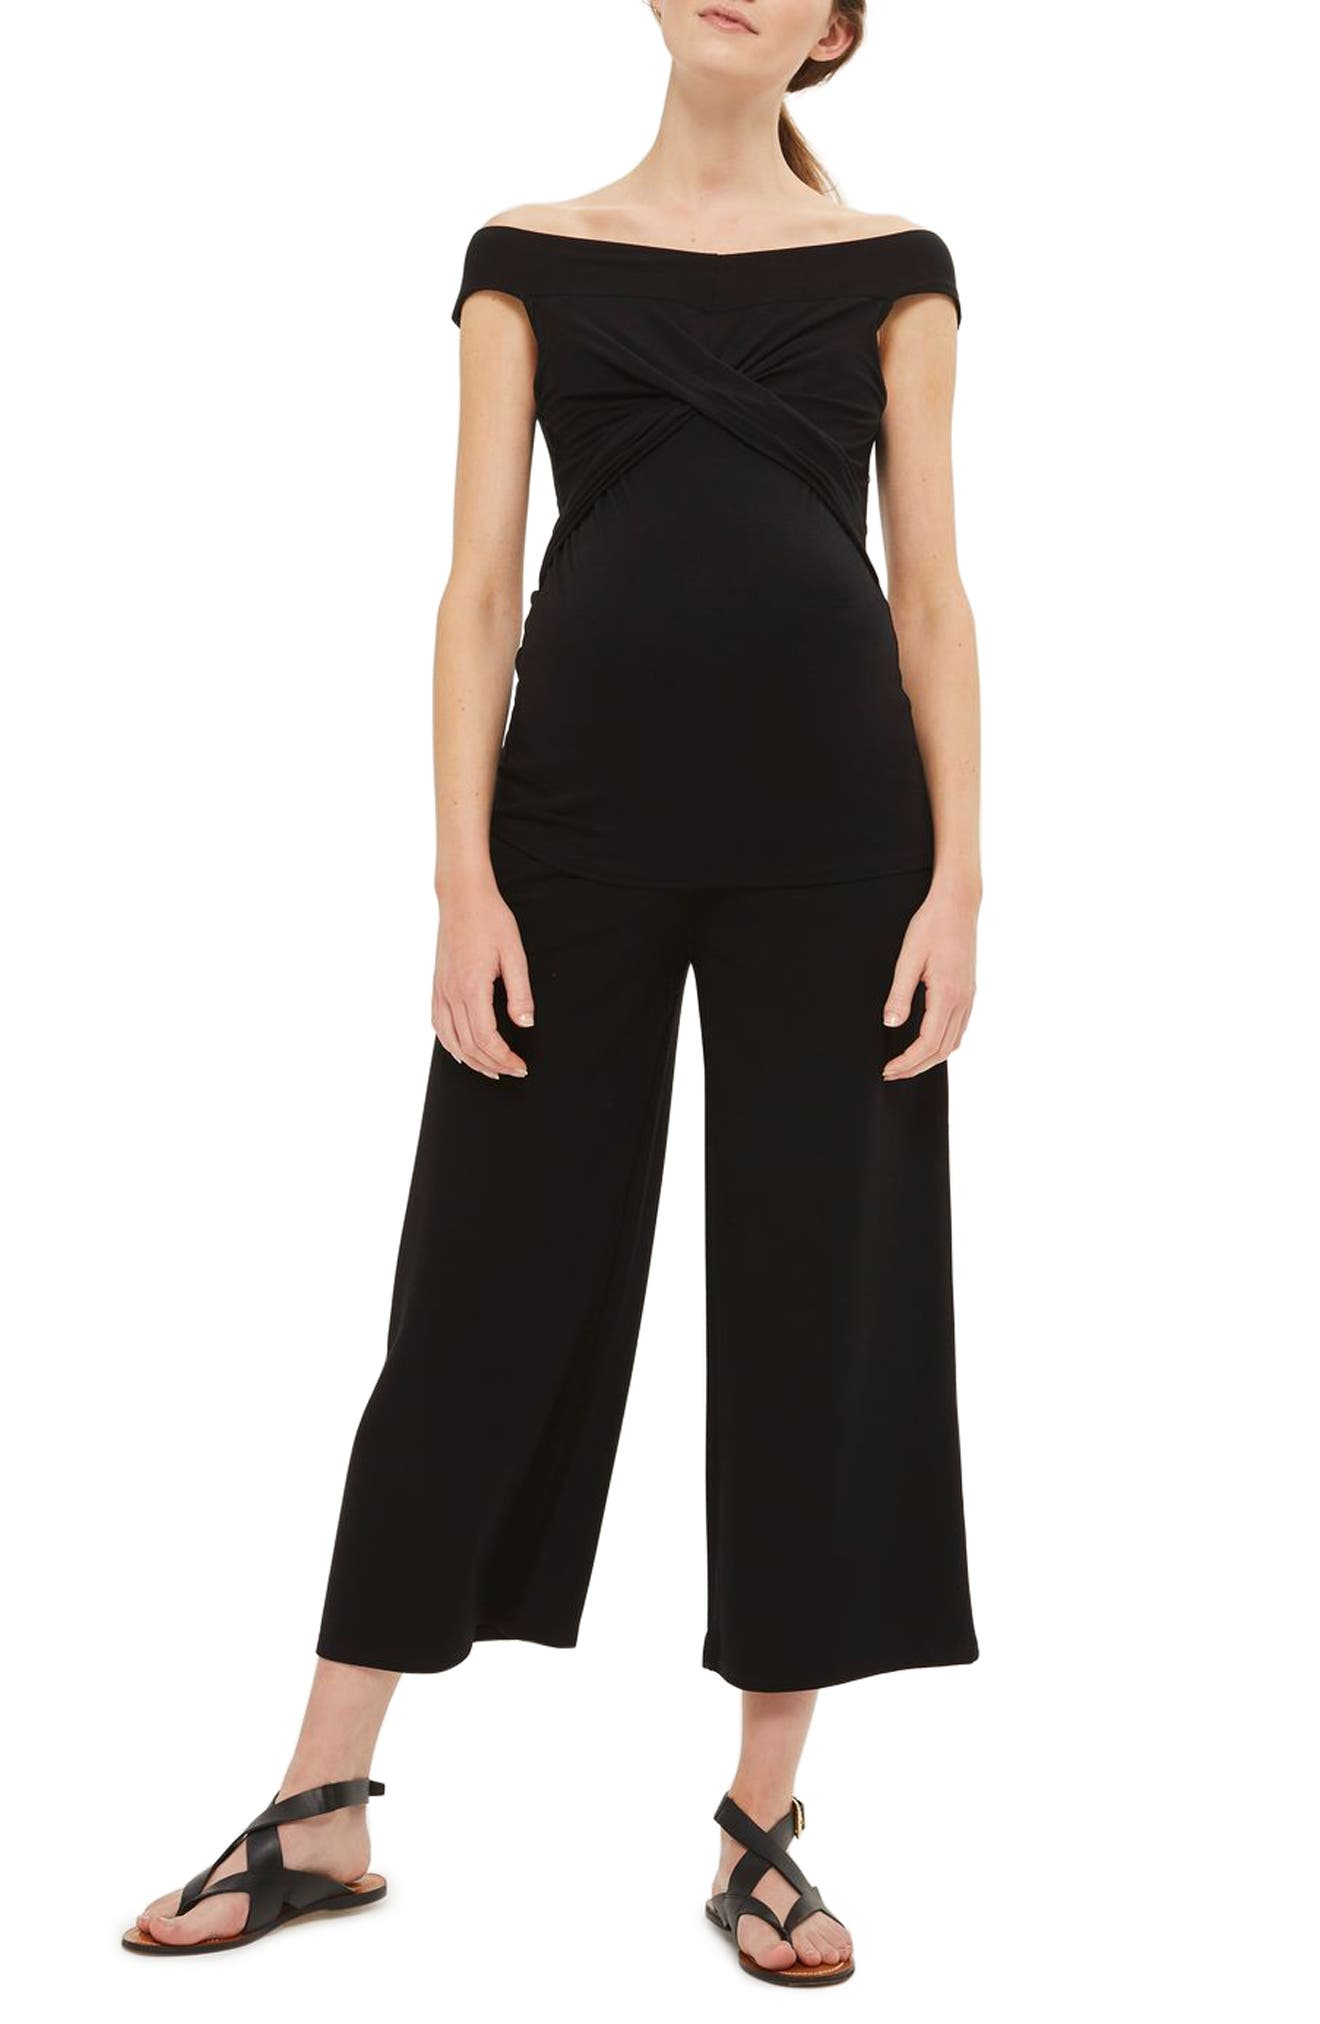 Topshop Bardot Nursing/Maternity Top